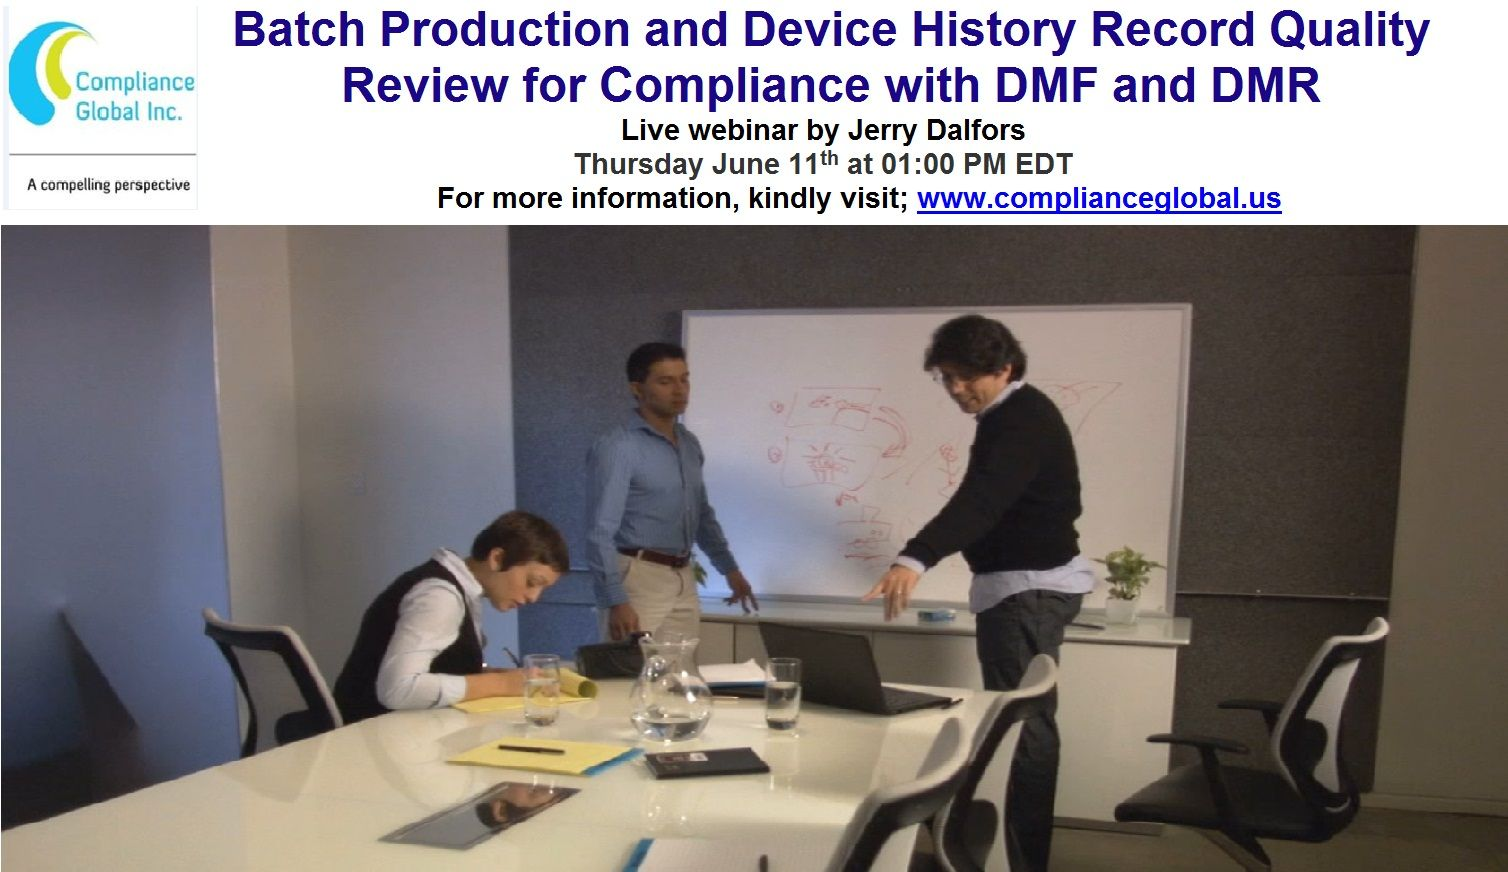 Batch Production and Device History Record Quality Review